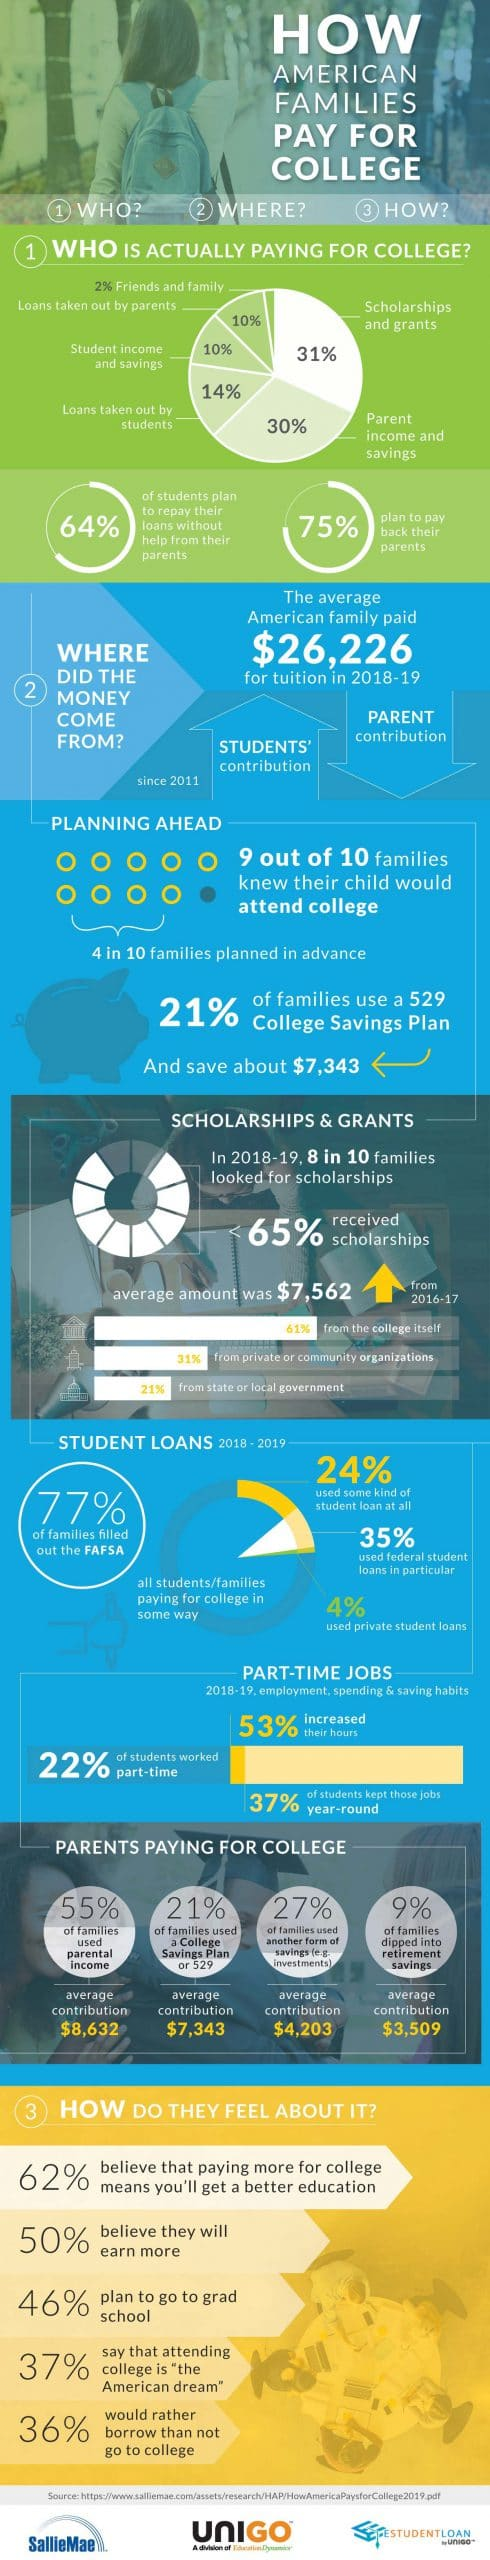 2020: How to Pay for College in America